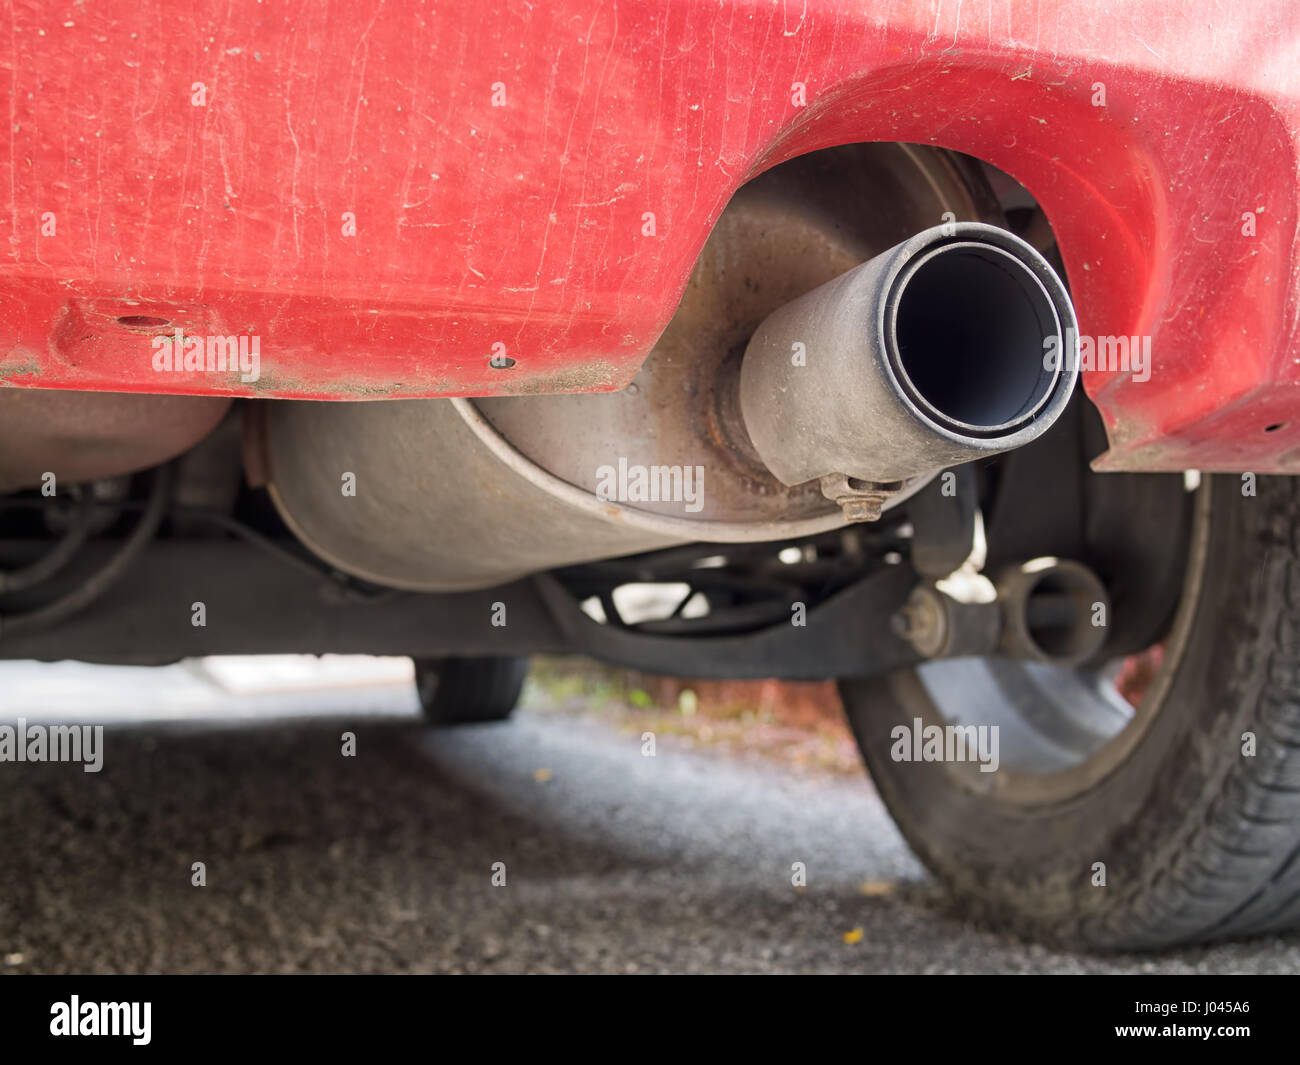 Diesel car exhaust with visible soot. - Stock Image